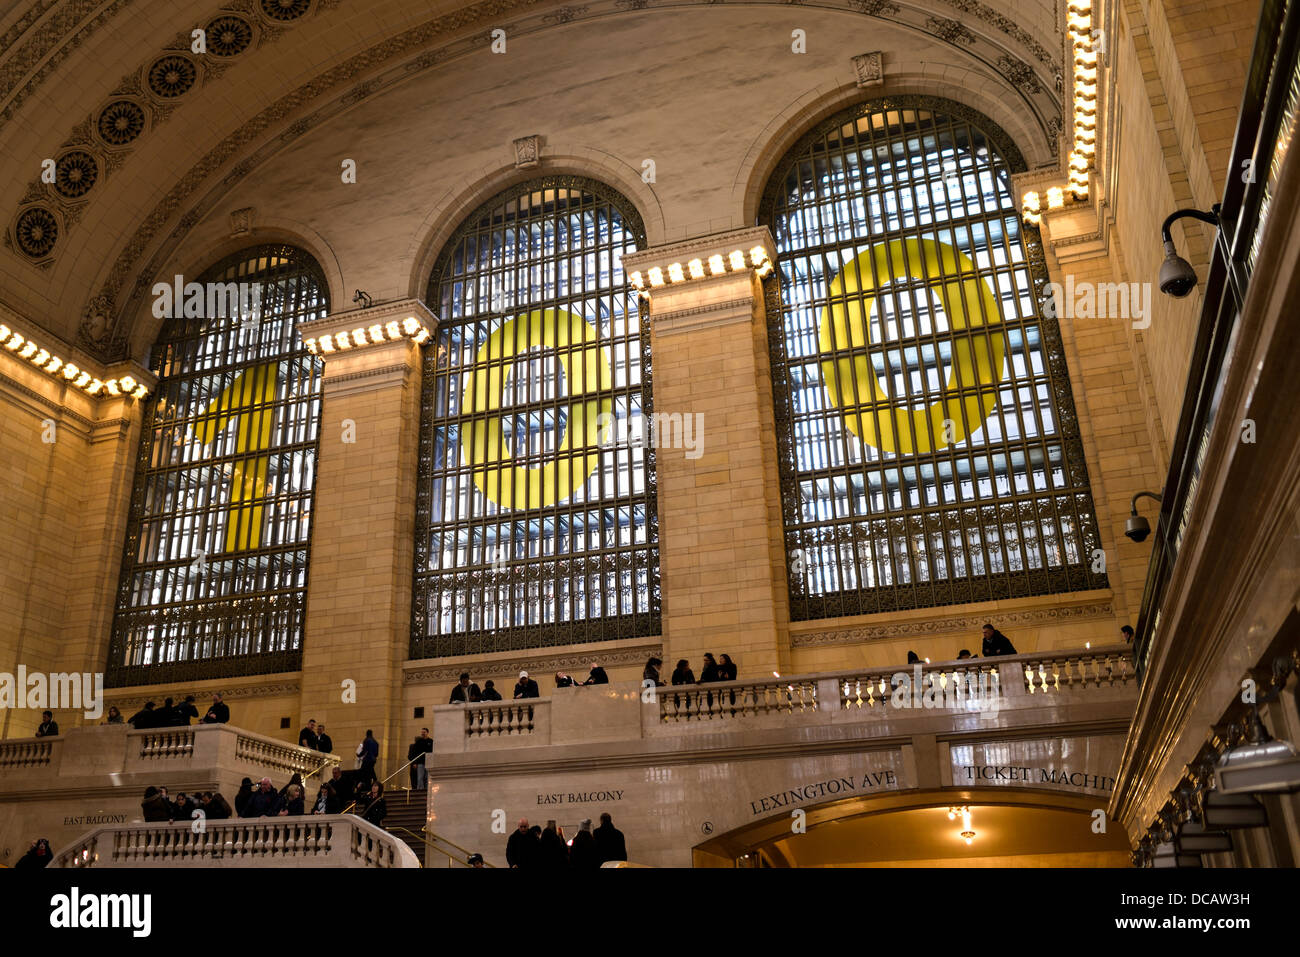 Grand Central Terminal celebrates 100-year anniversary - Stock Image